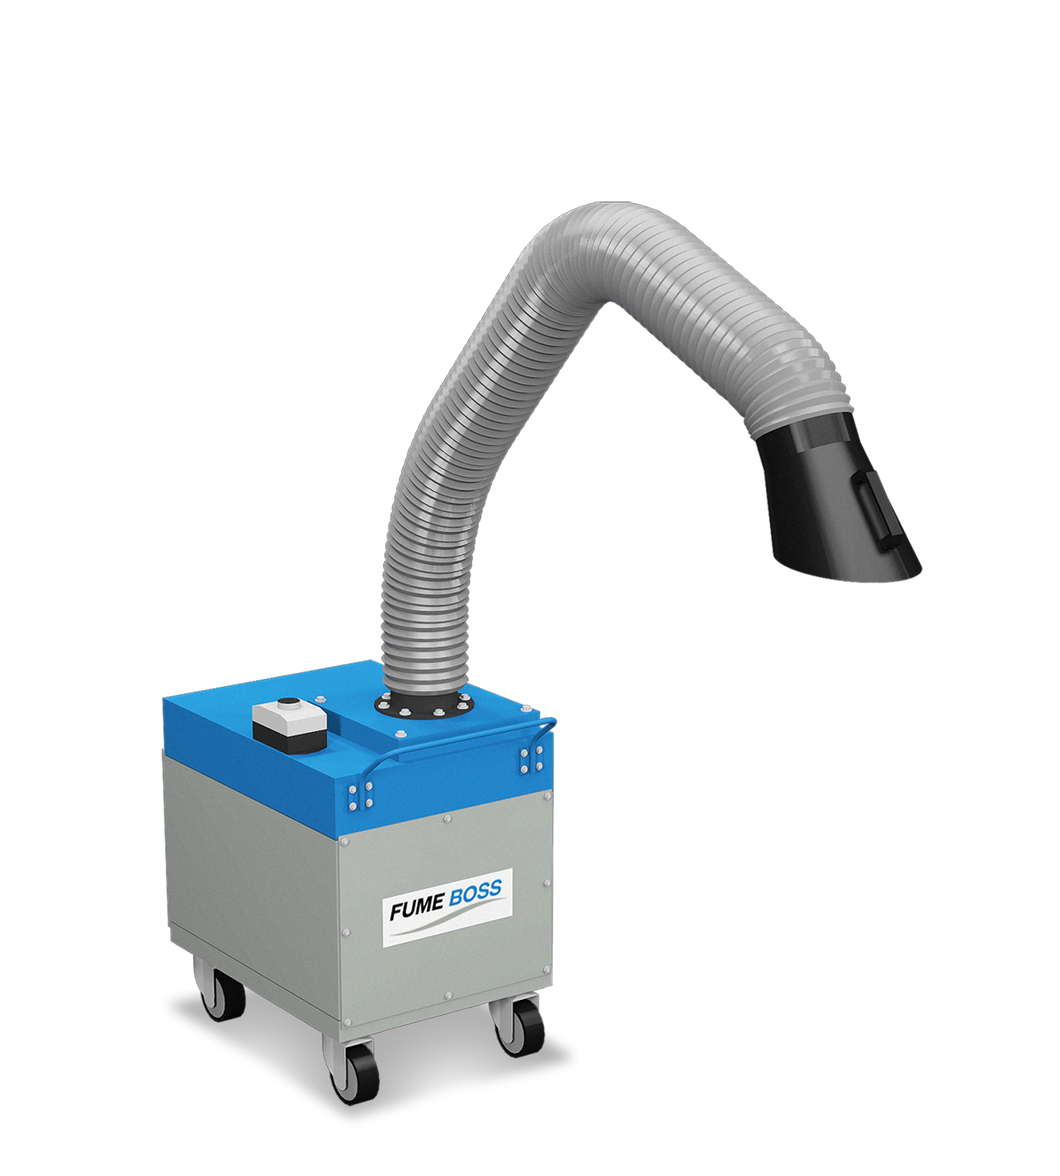 Fume Boss 800 Portable Fume Extractor